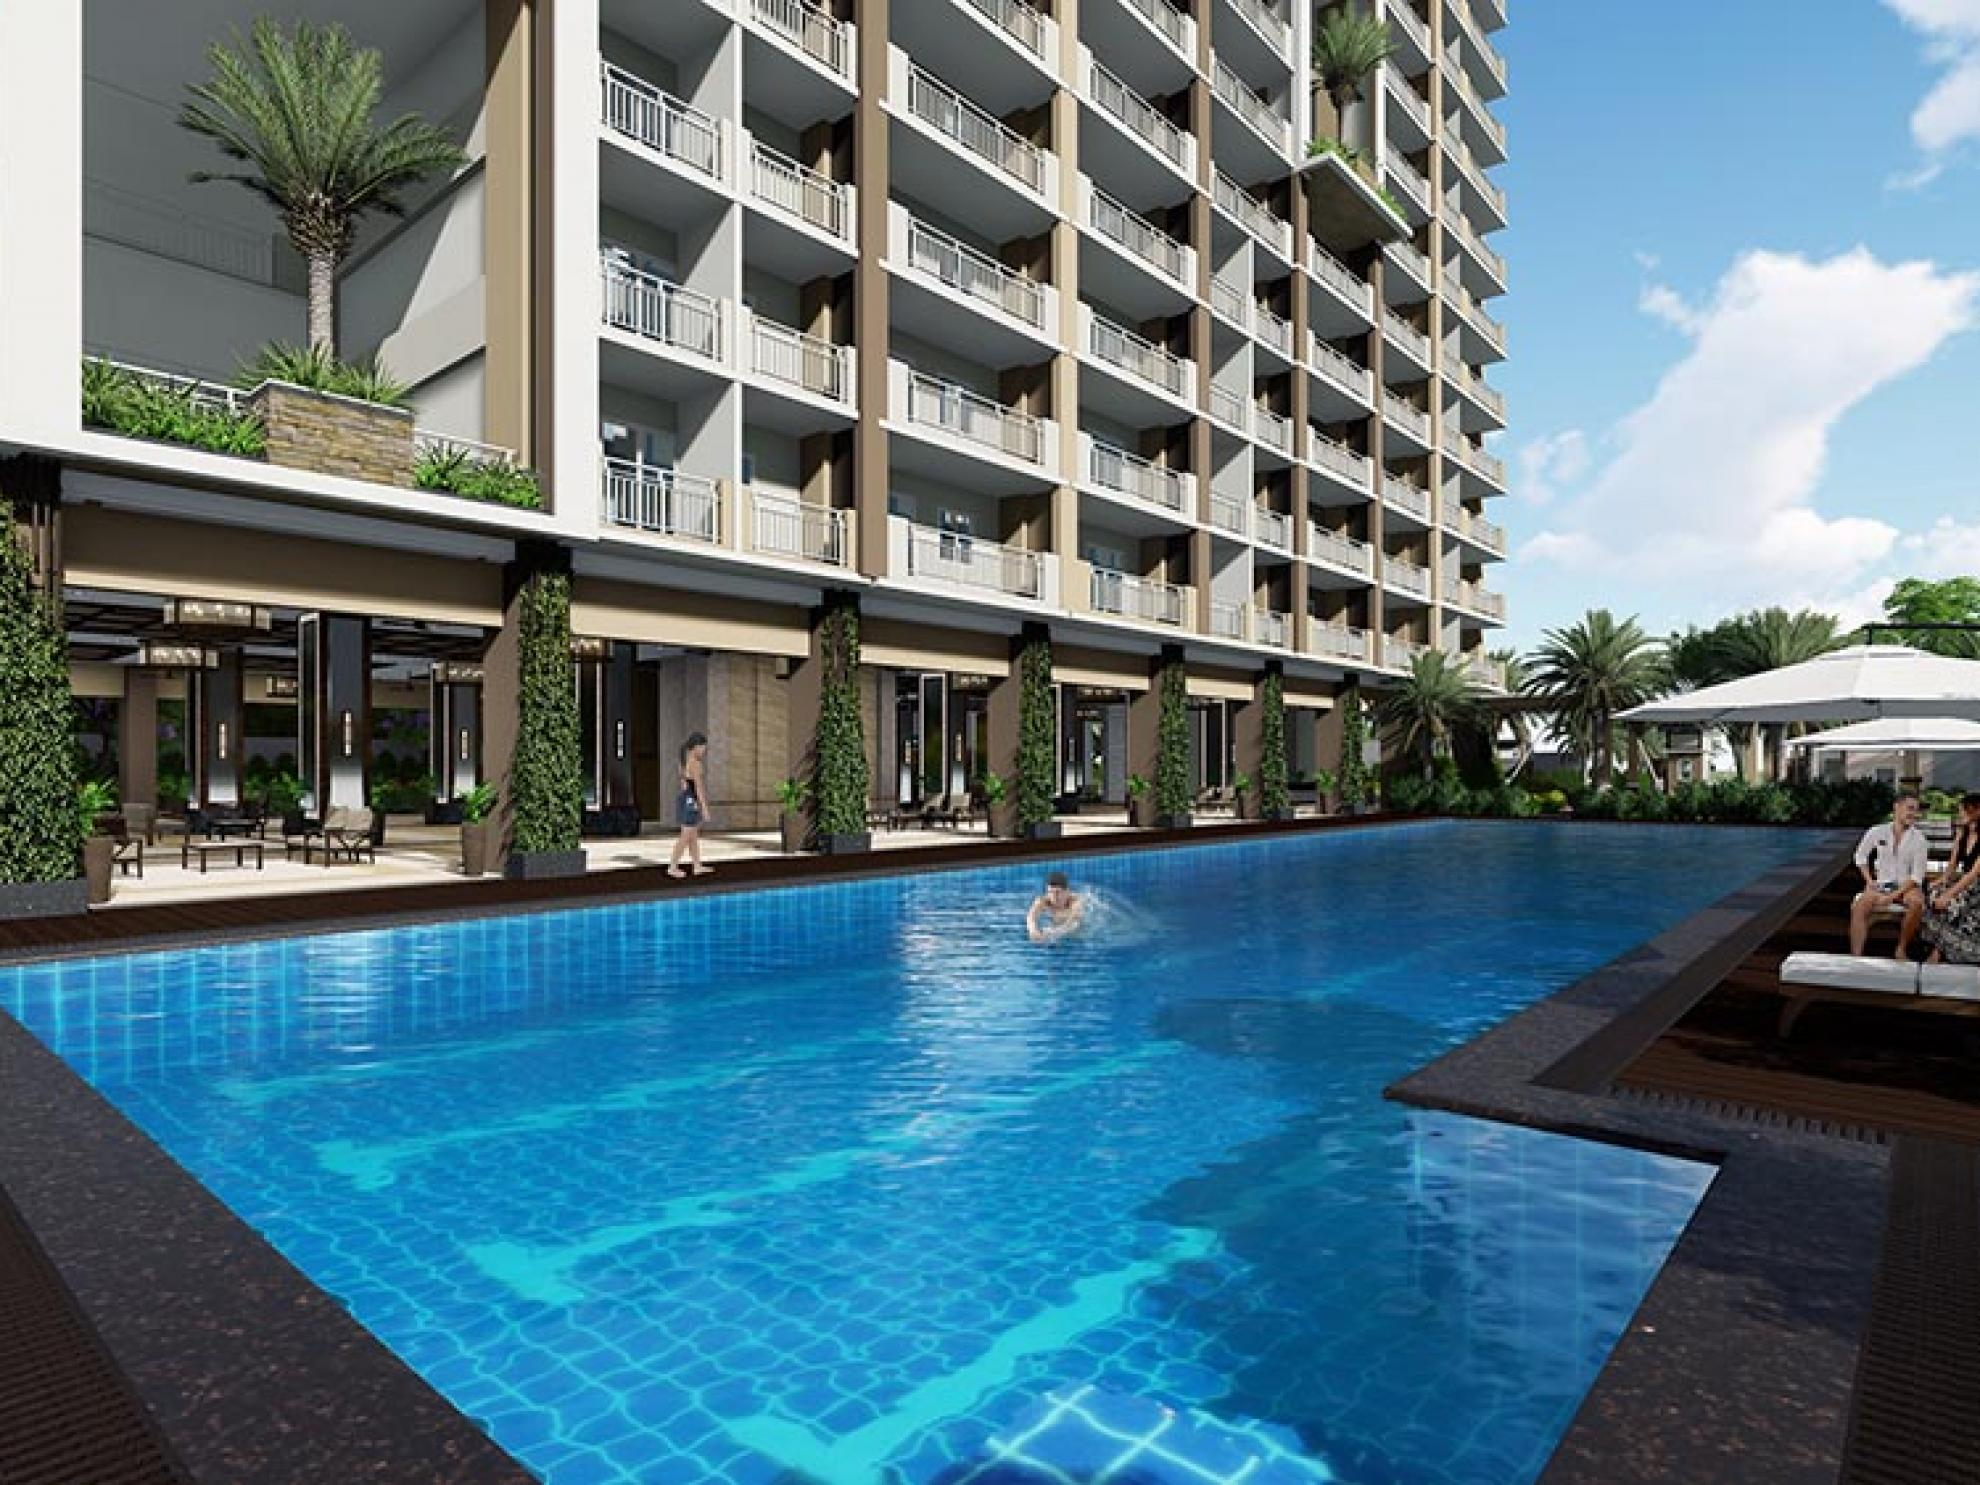 DMCI Homes set to launch The Atherton amidst high condo take up in southern metro